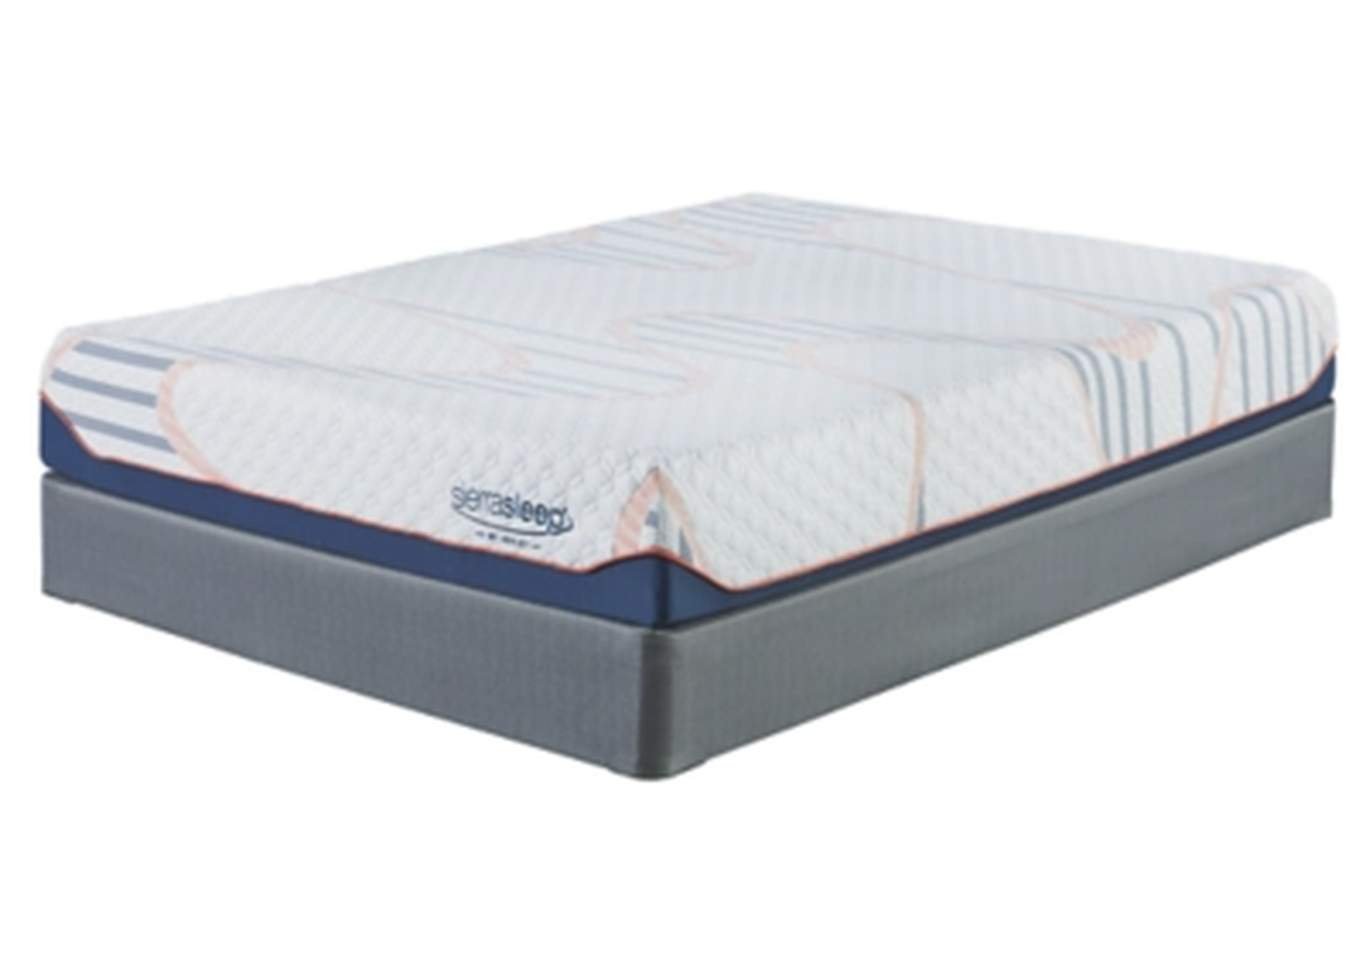 10 Inch MyGel Full Mattress,Sierra Sleep by Ashley